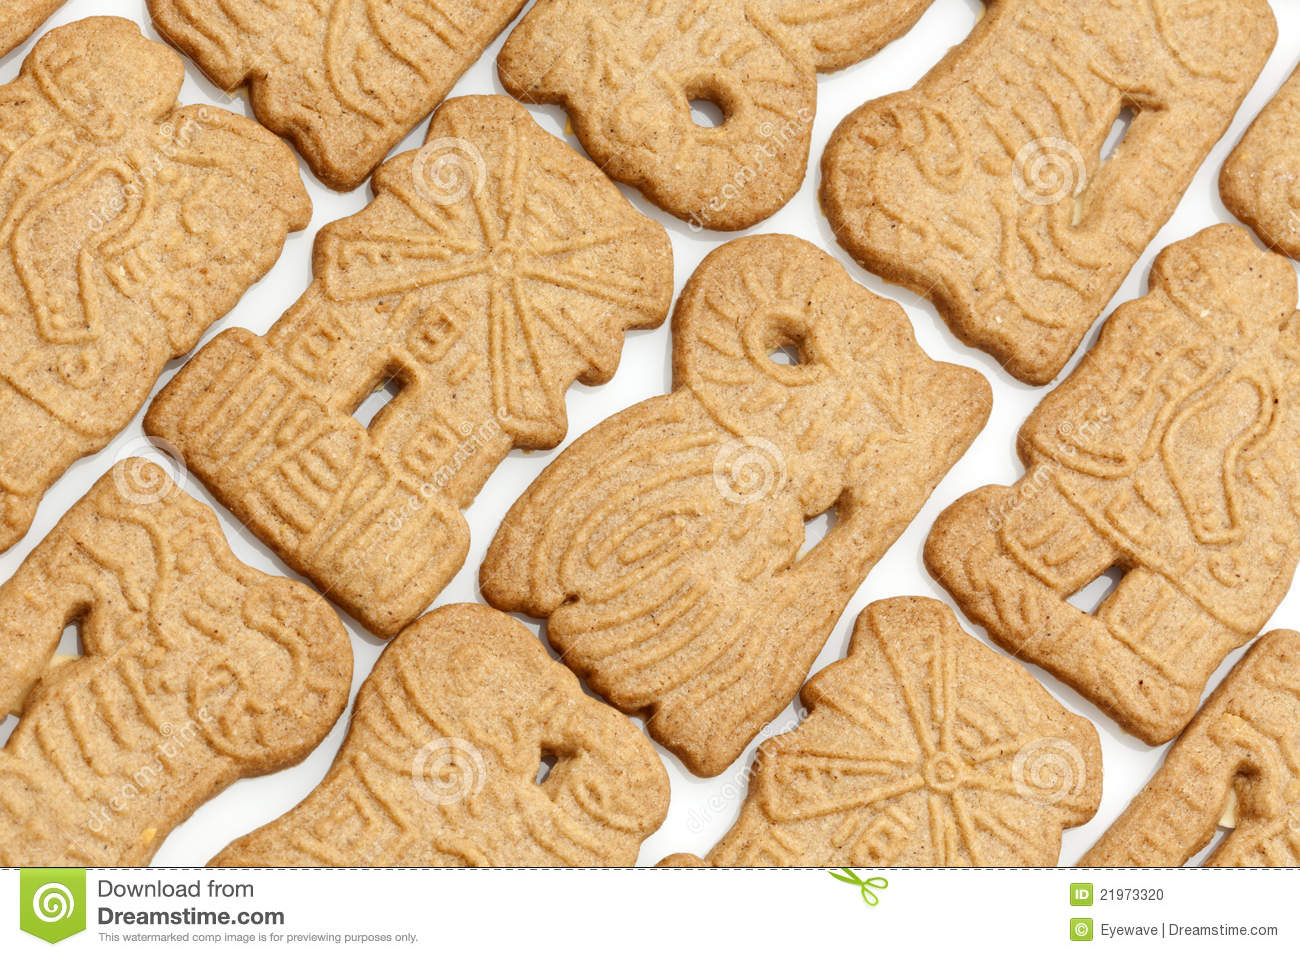 Background Of Dutch Speculaas Cookies Stock Photo - Image: 21973320